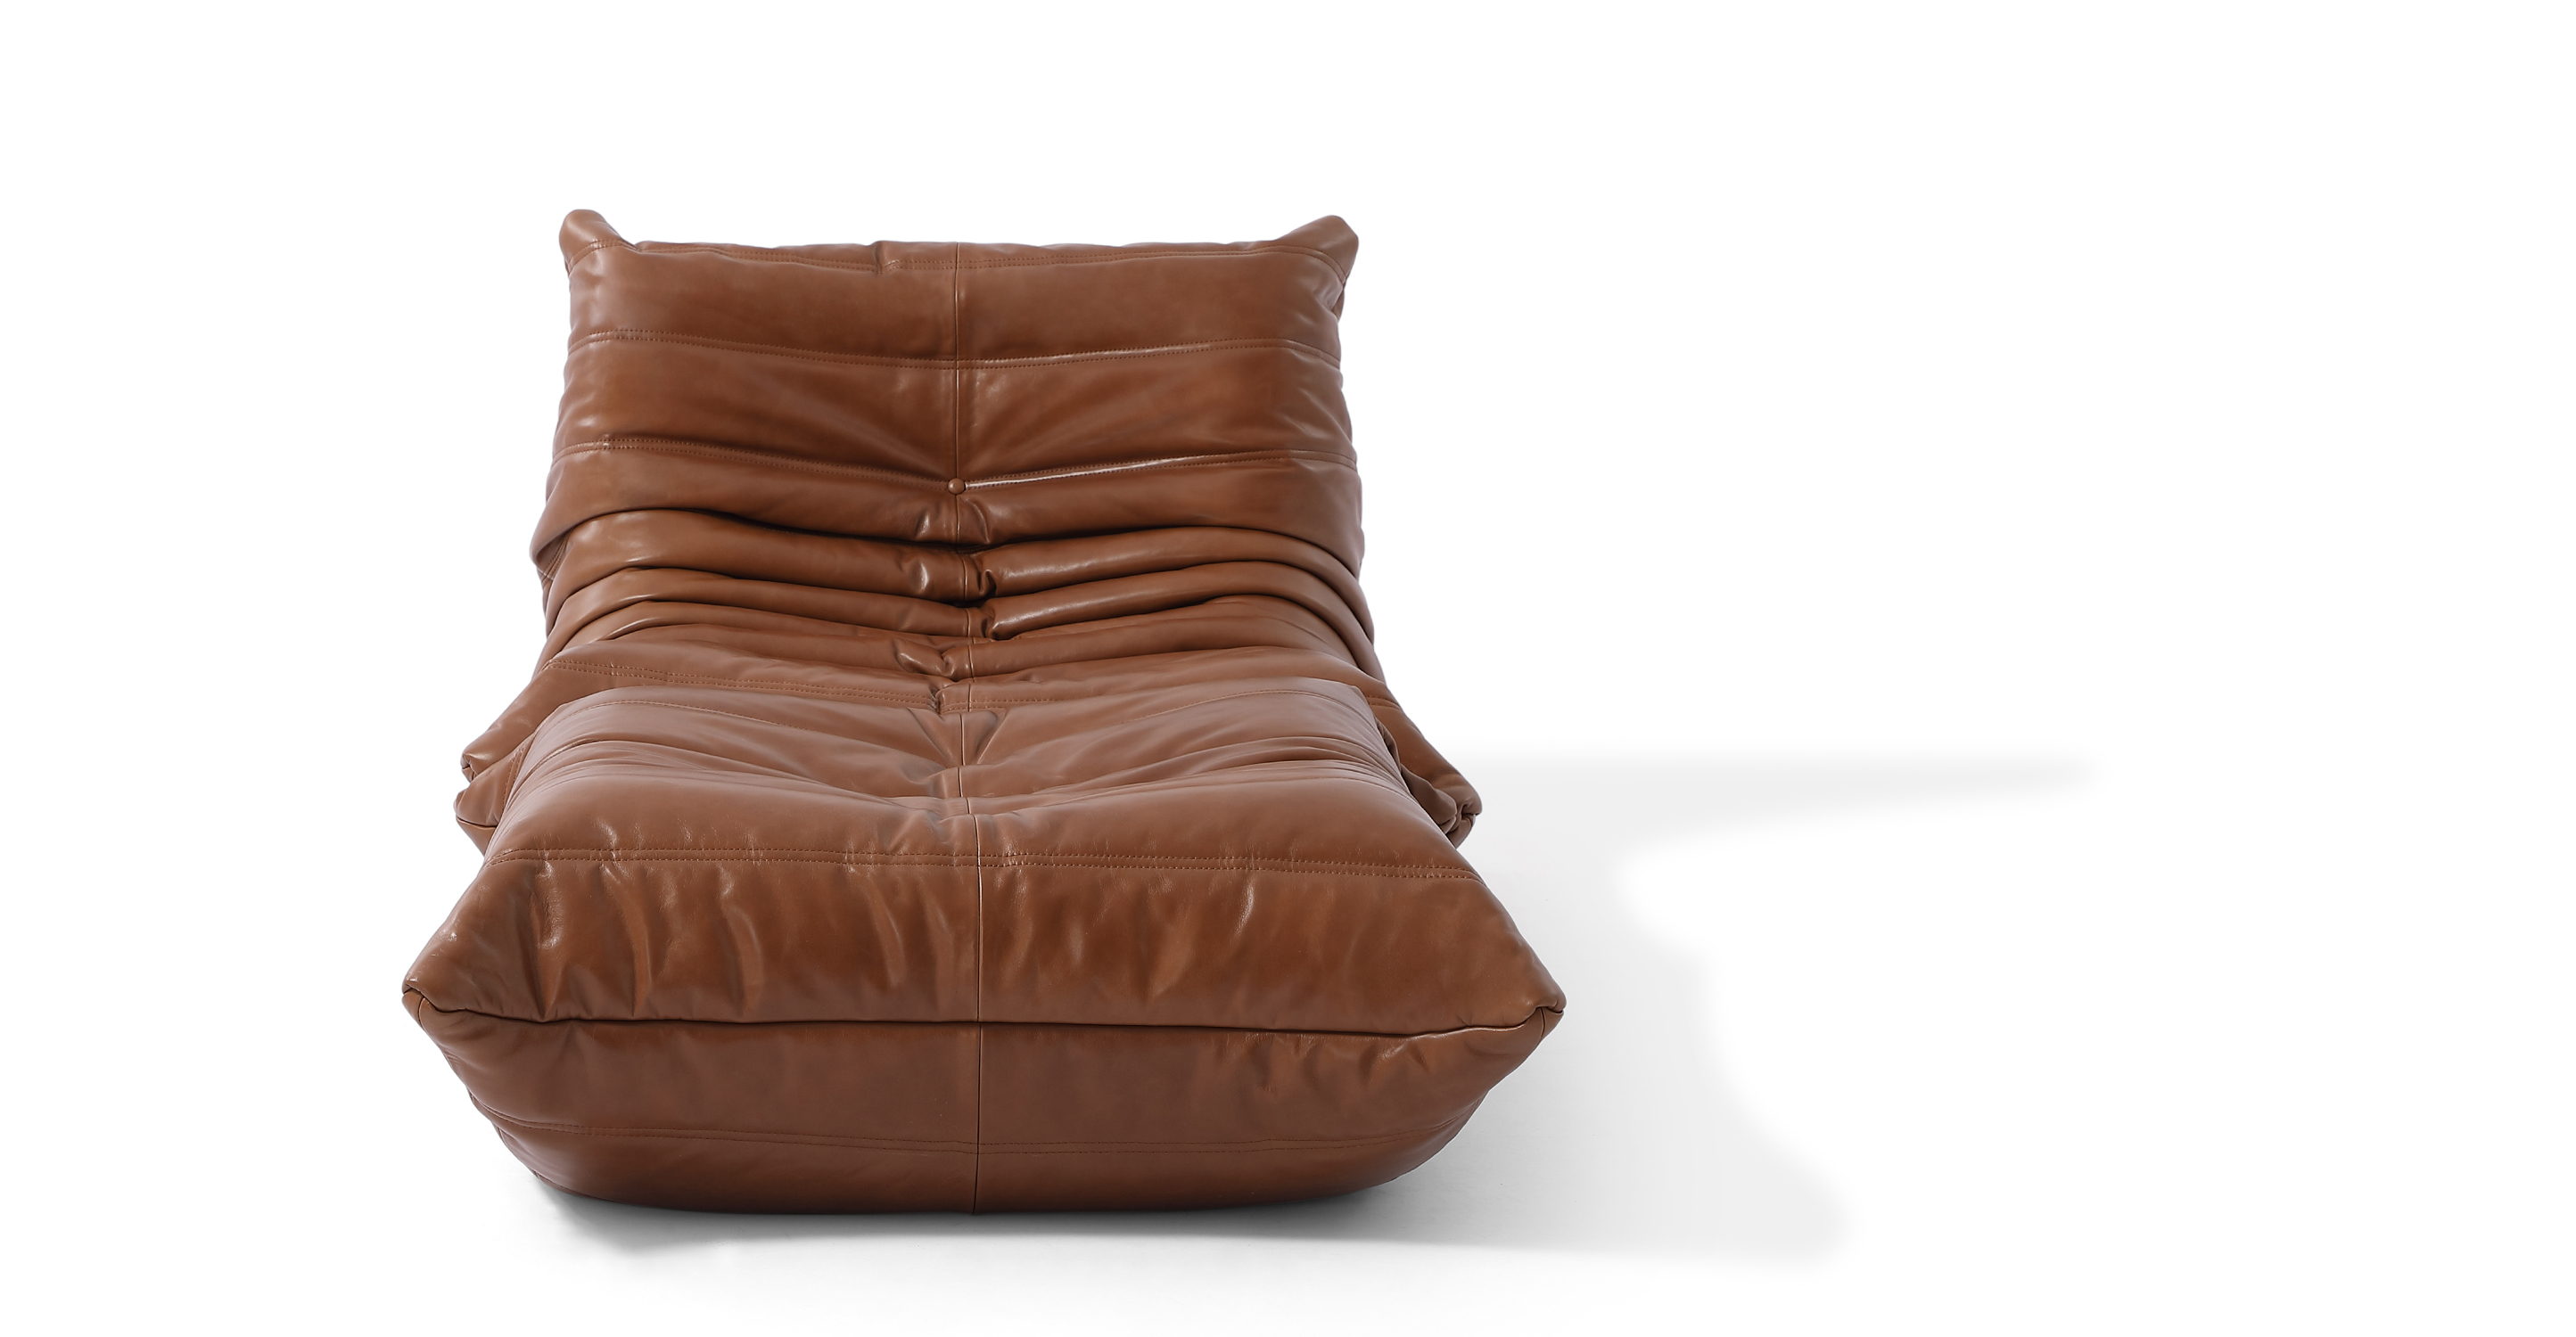 Louvre Leather Chair & Ottoman, Saddle